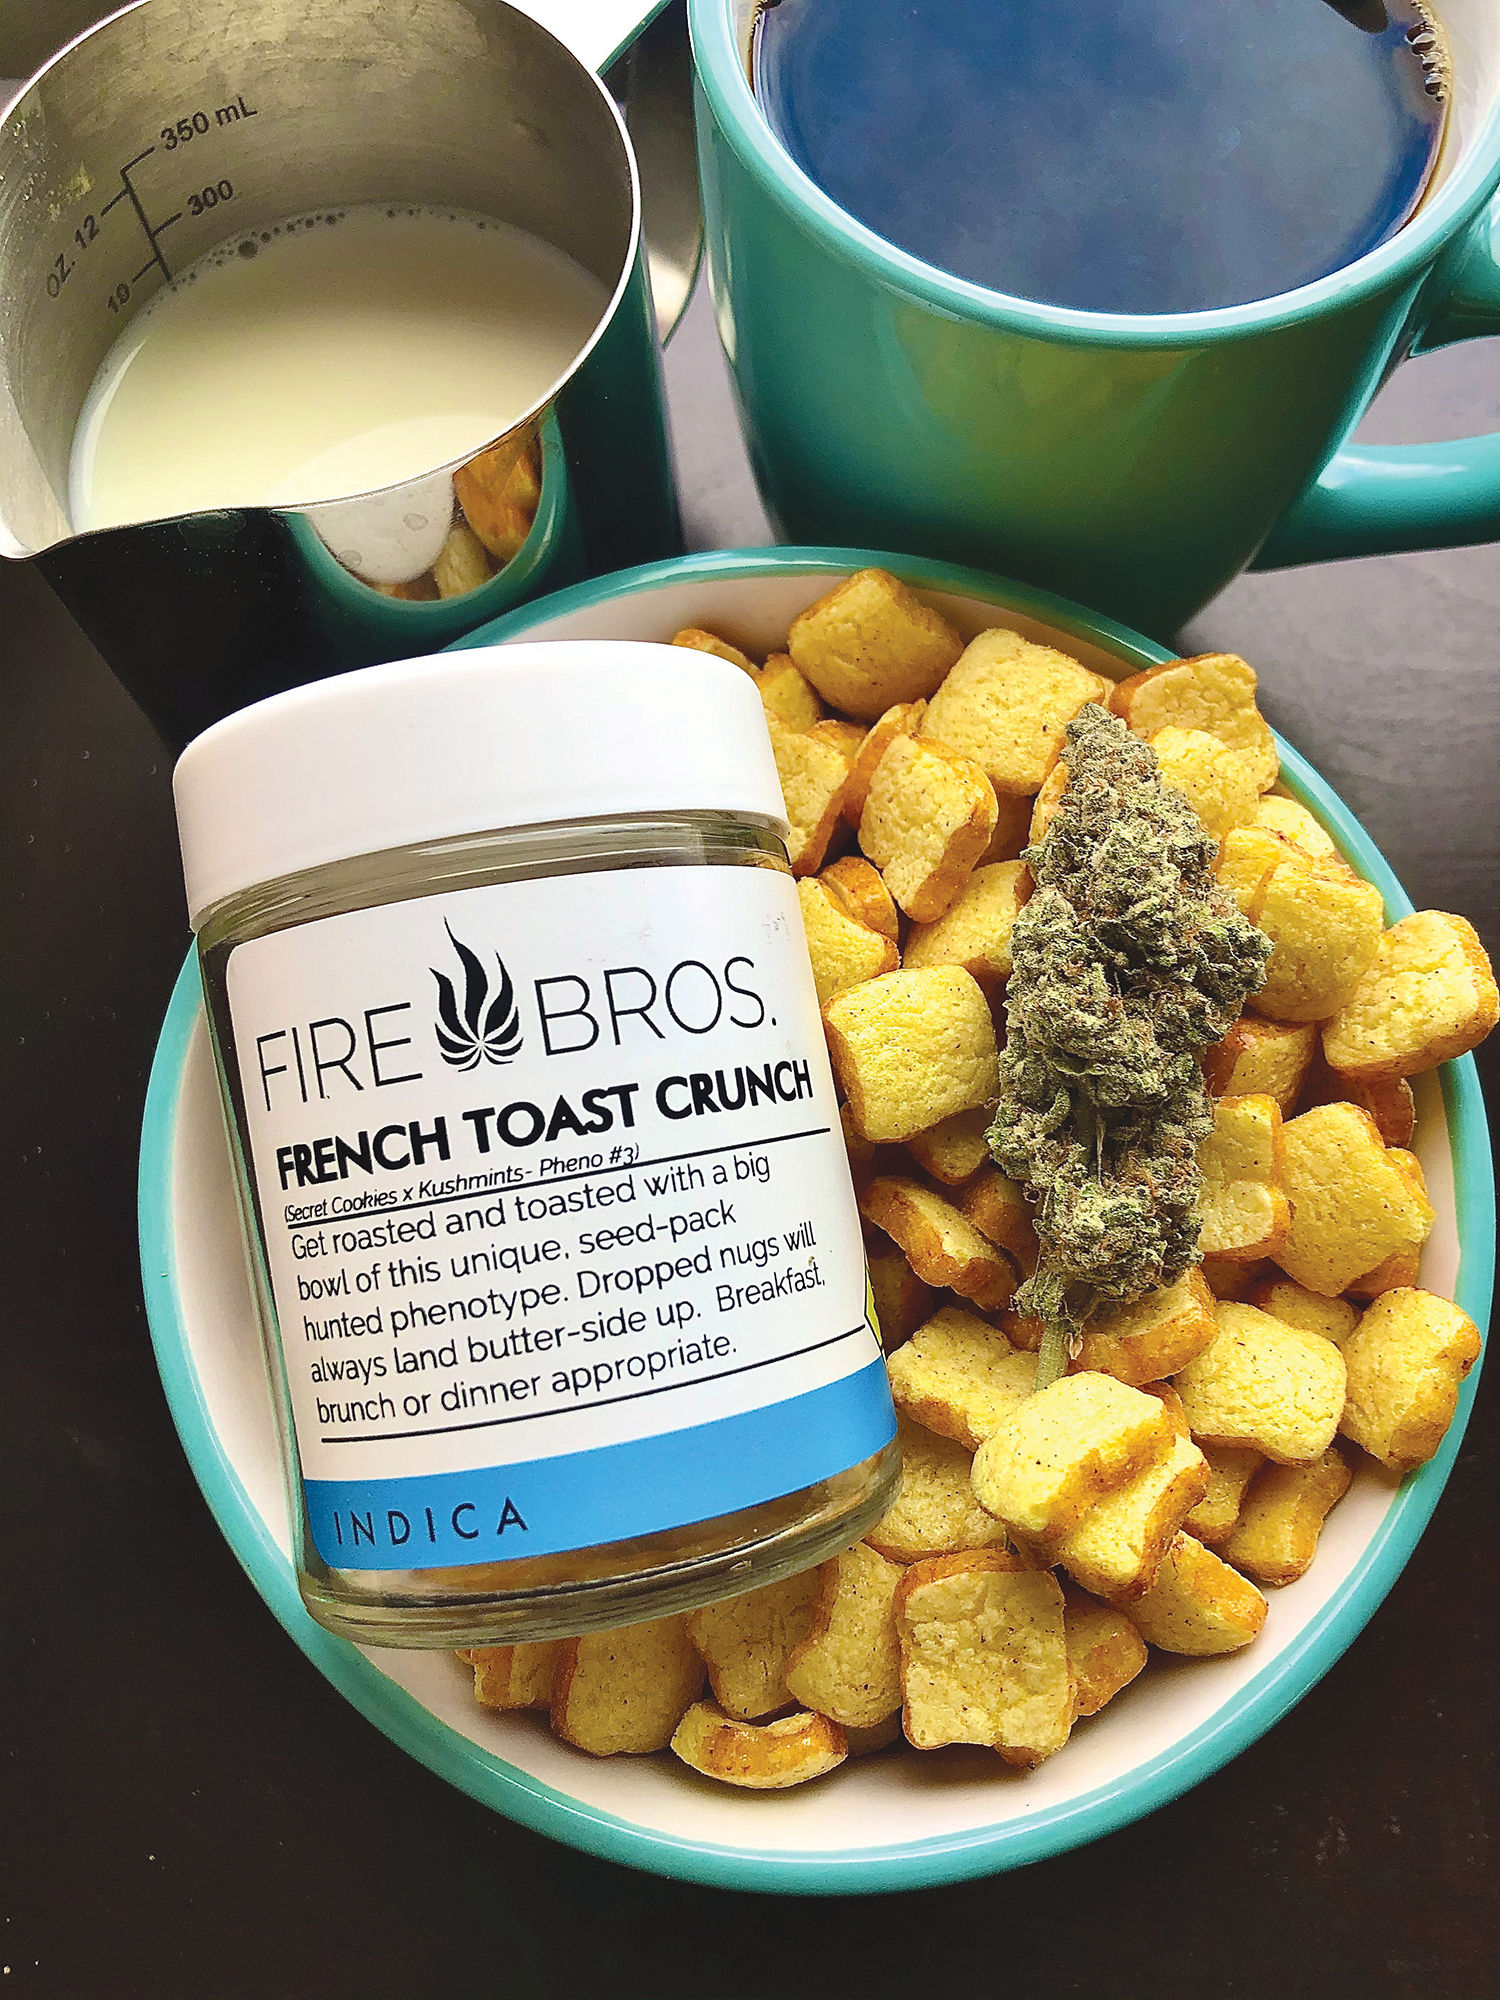 Coffee & Cannabis: Coffee with Milk & French Toast Crunch